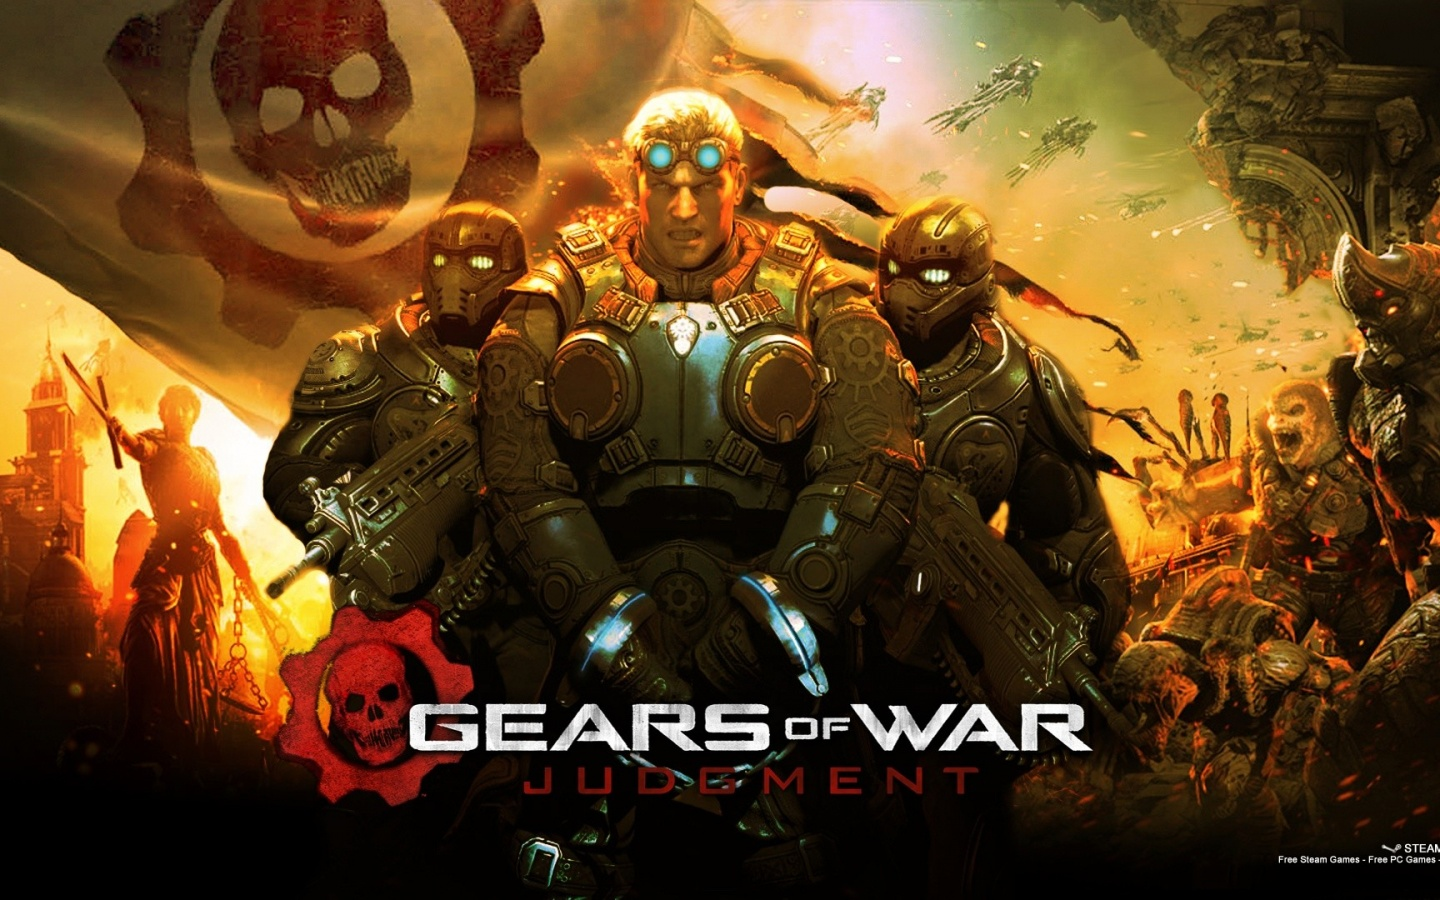 1440x900 2013 Gears of War Judgment Gam desktop PC and Mac wallpaper